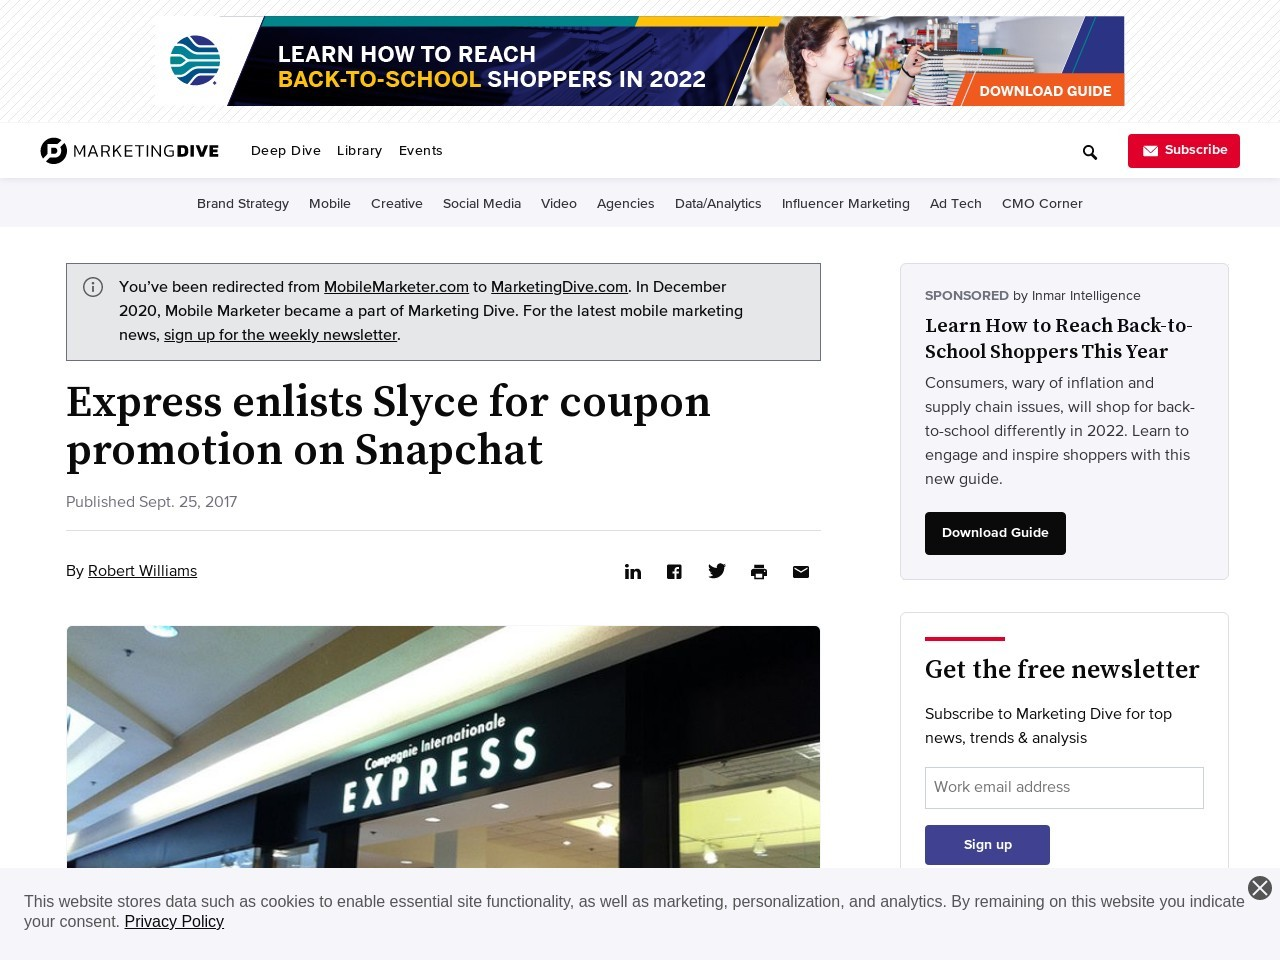 Express sees 1M activations for Snapchat coupon